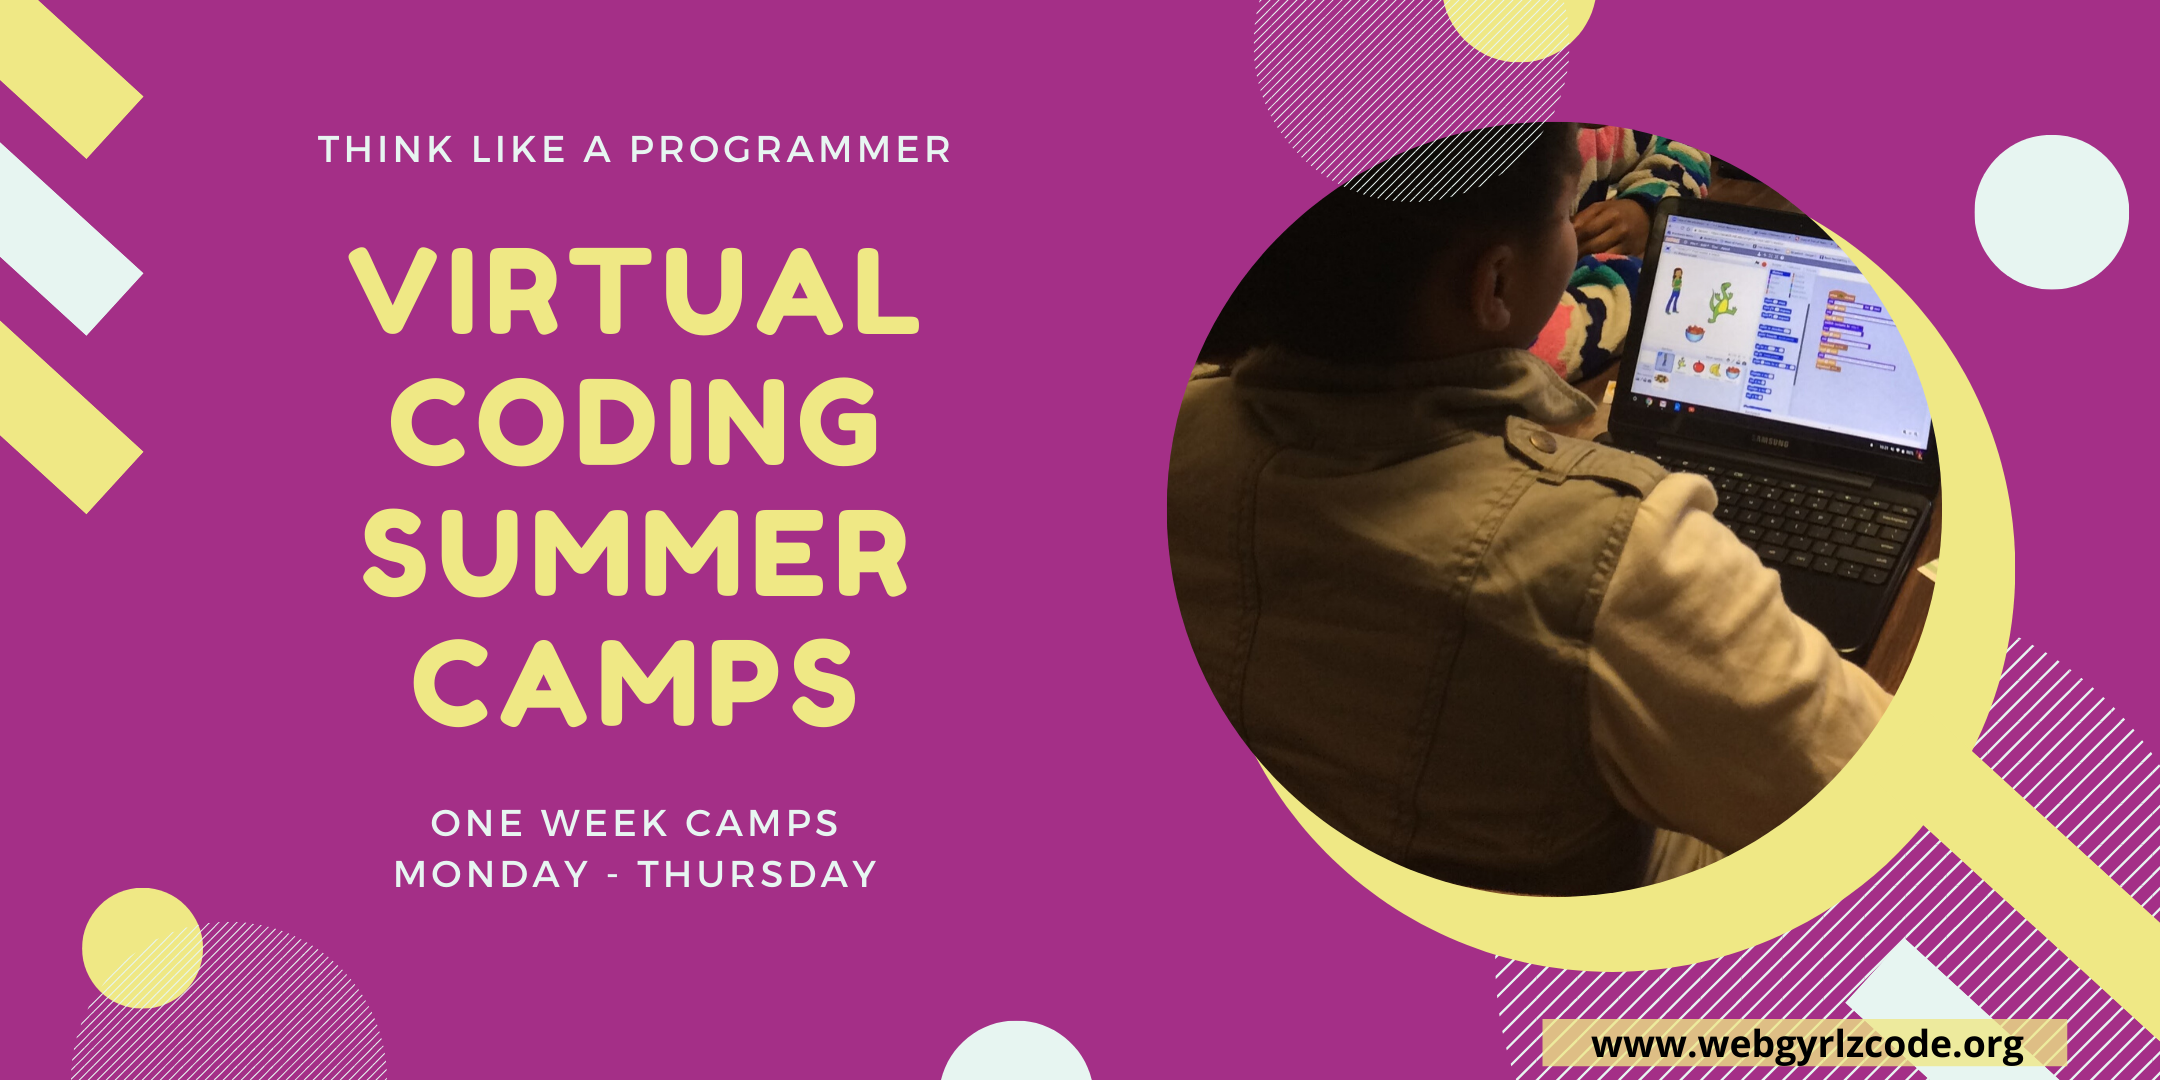 VIRTUAL CODING SUMMER CAMPS